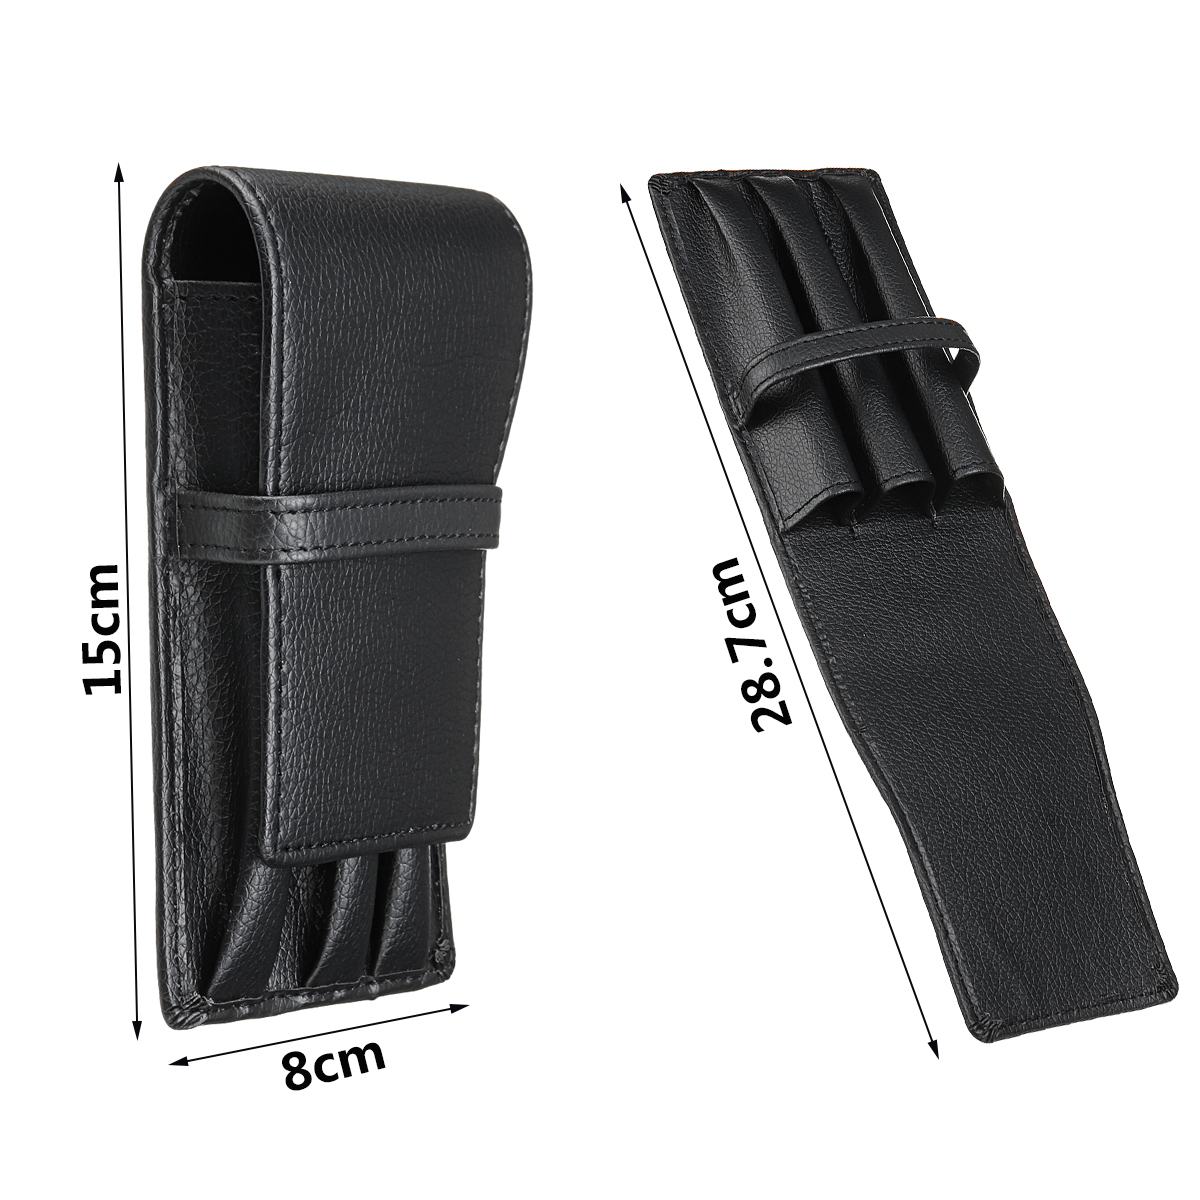 Fountain Pen Roller PU Leather Pouch Pen Case Holder Storage Bag For 3 Pens School Office Supplies